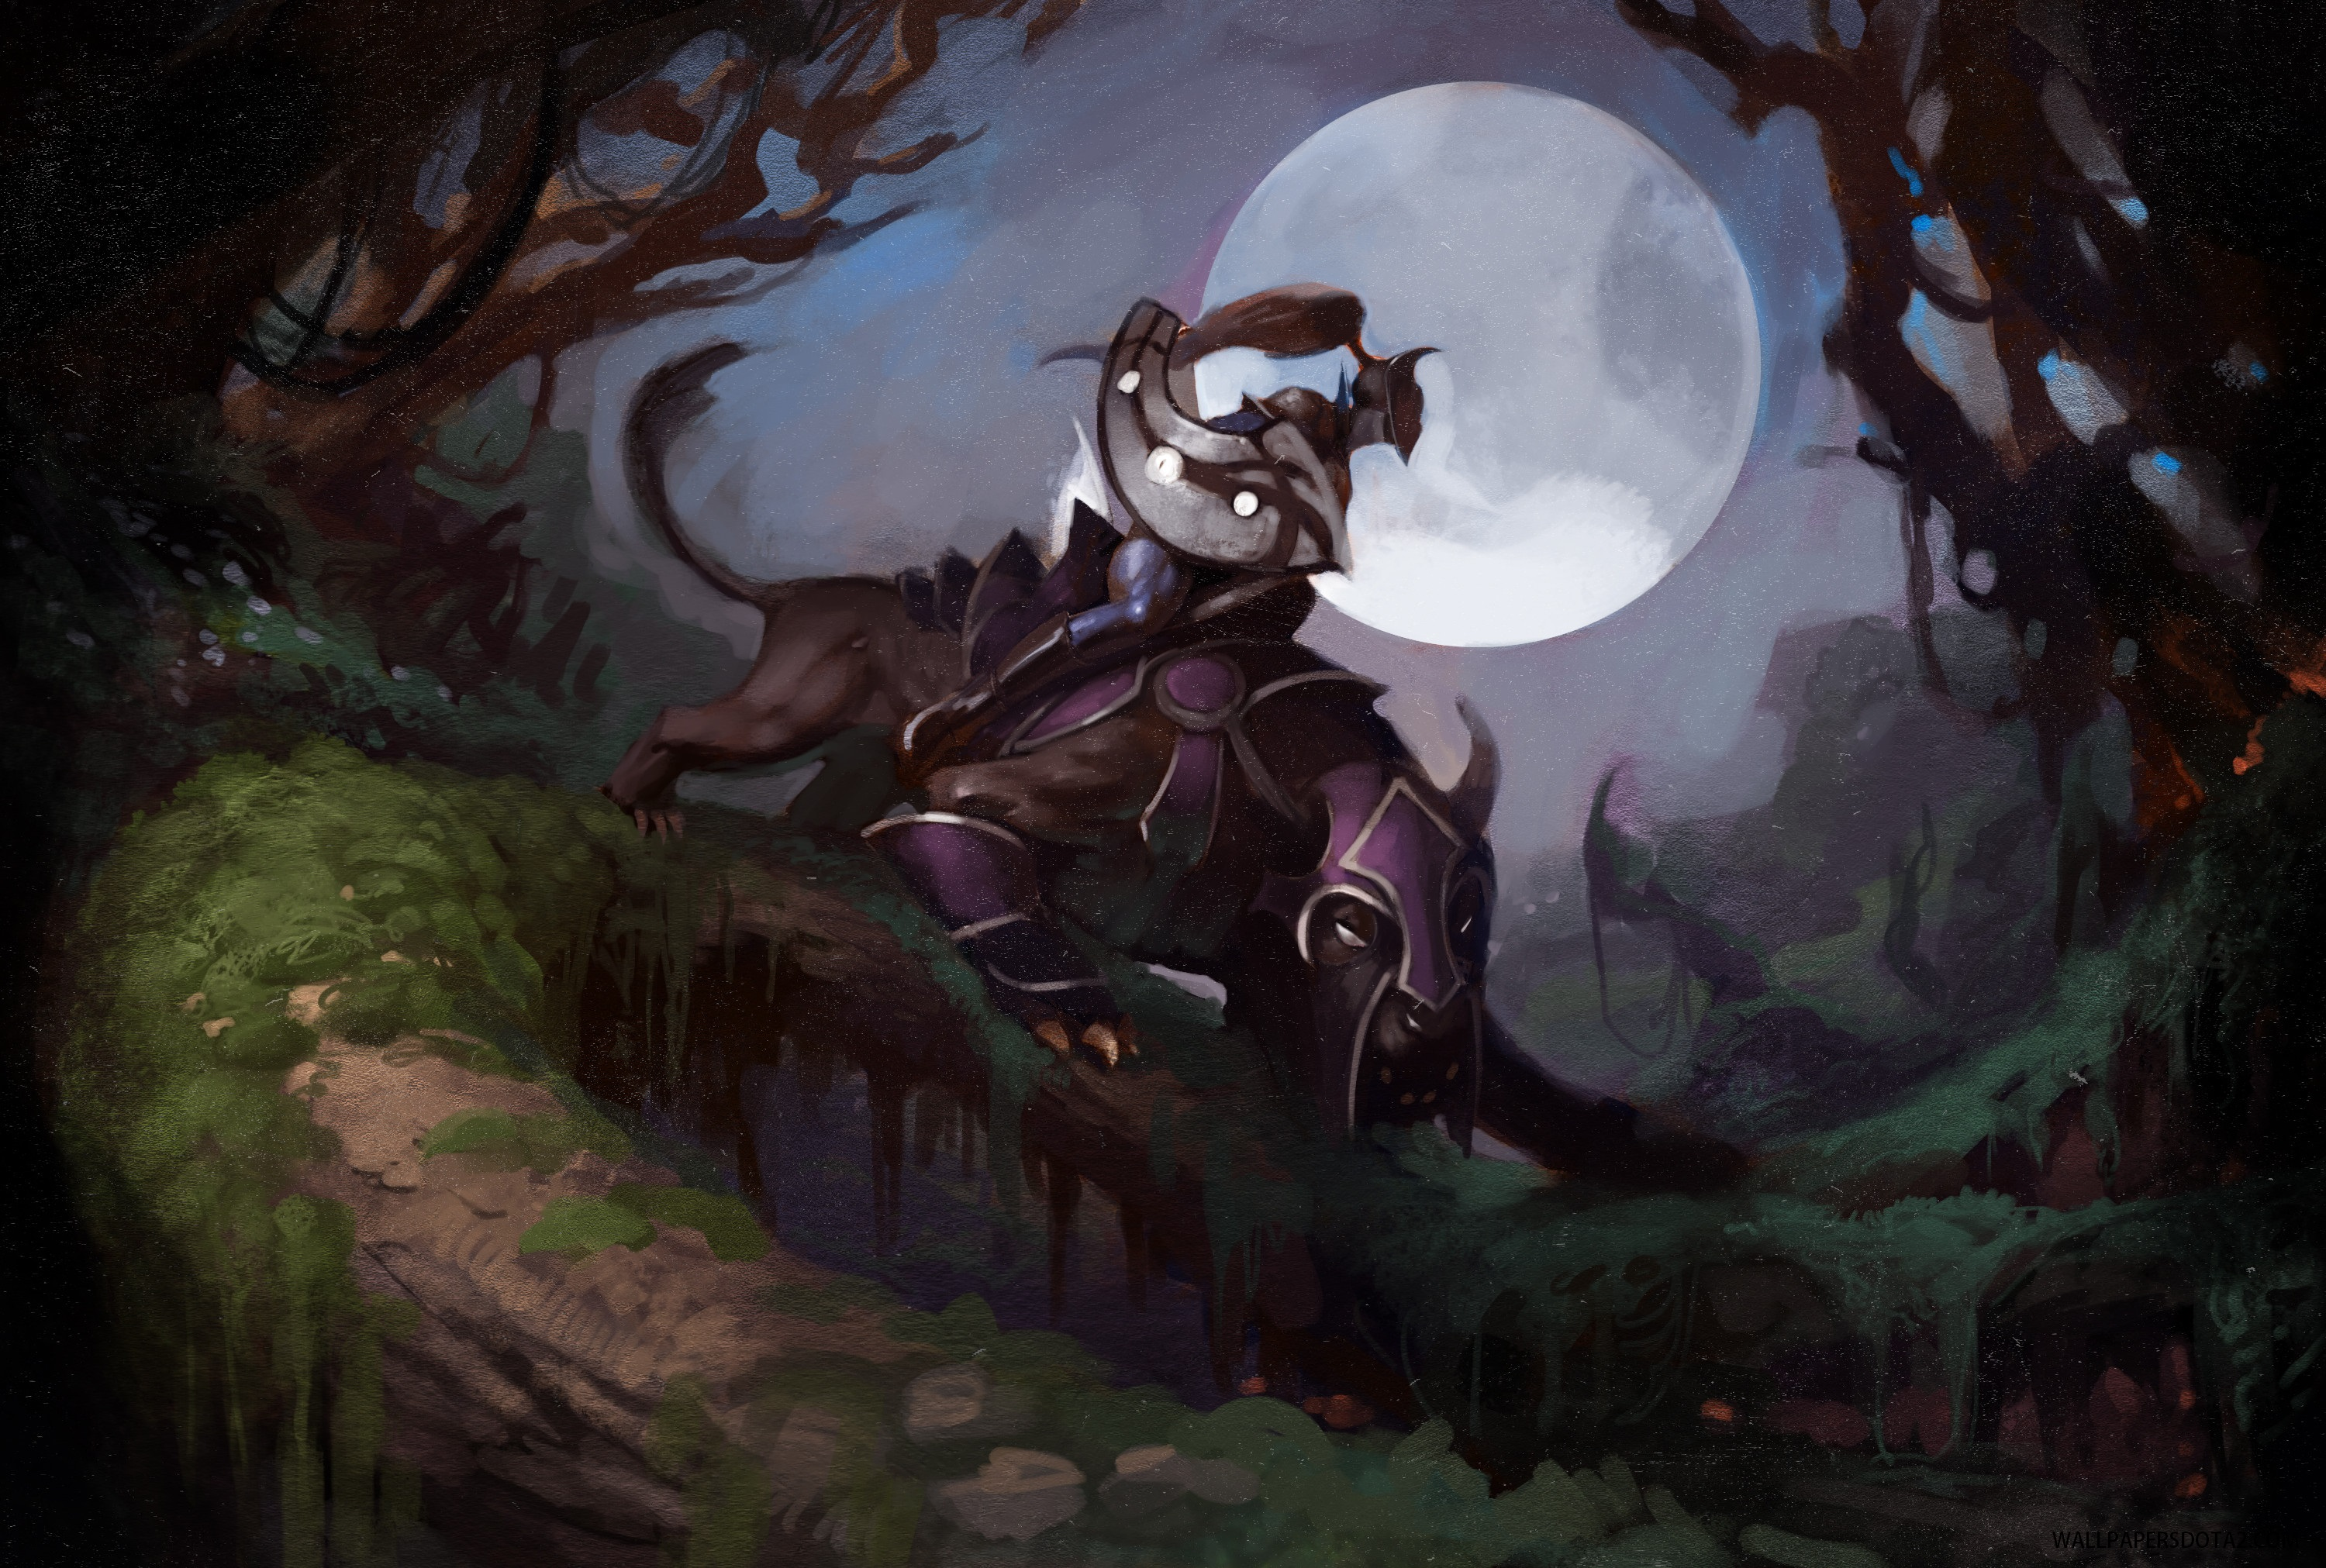 Luna free pc wallpaper download Dota 2